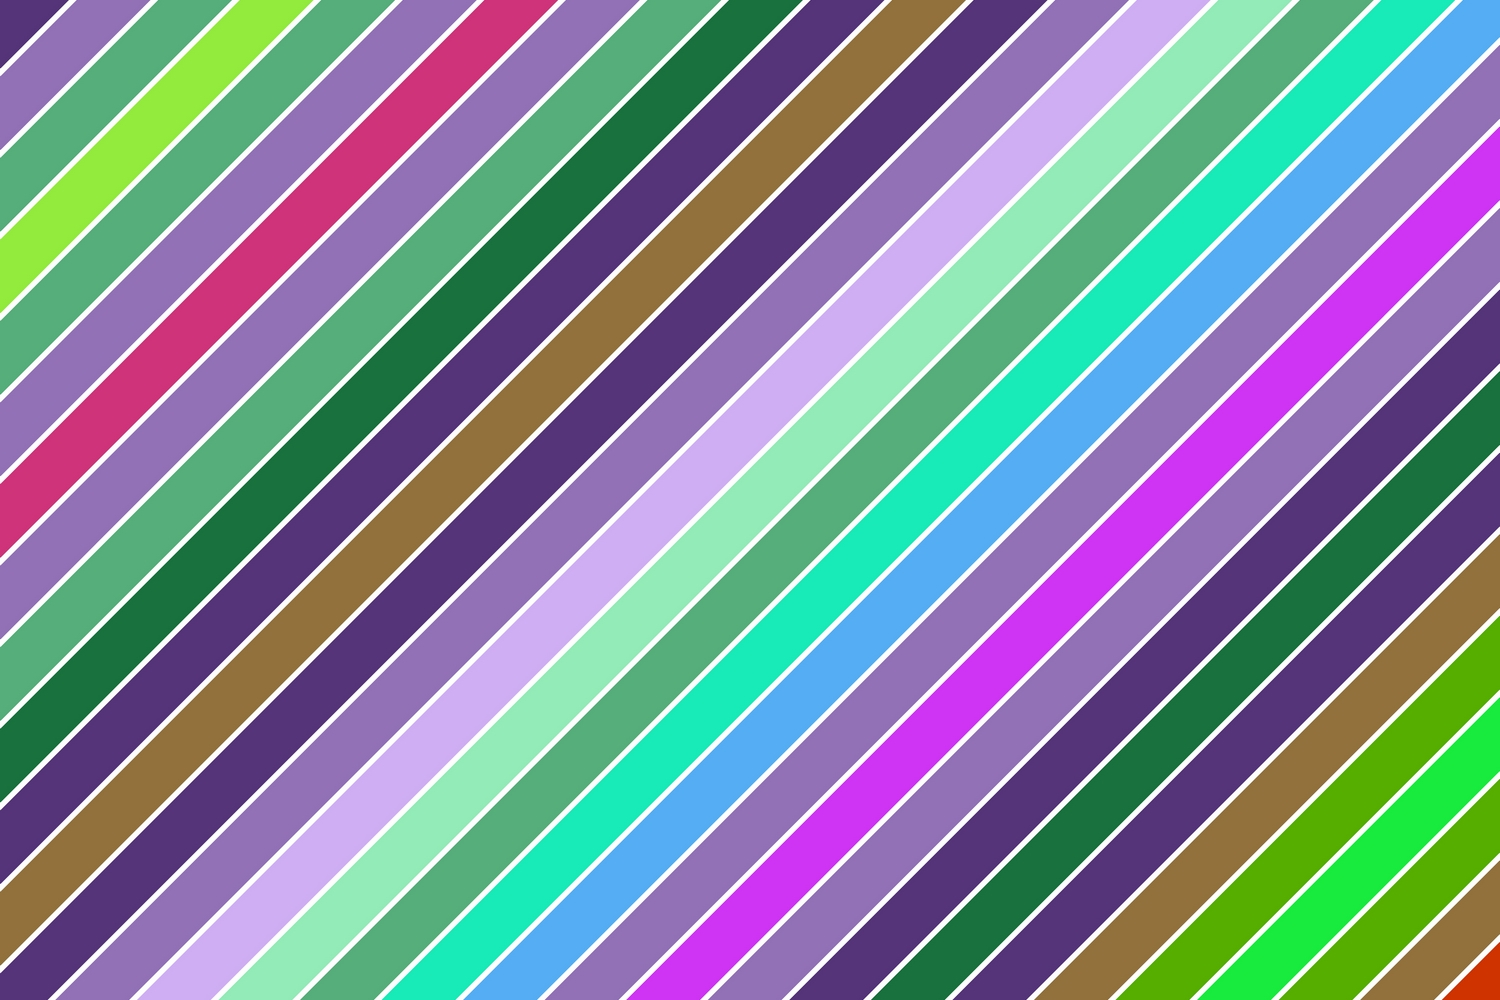 50 colorful stripe backgrounds (AI, EPS, JPG 5000x5000) example image 2